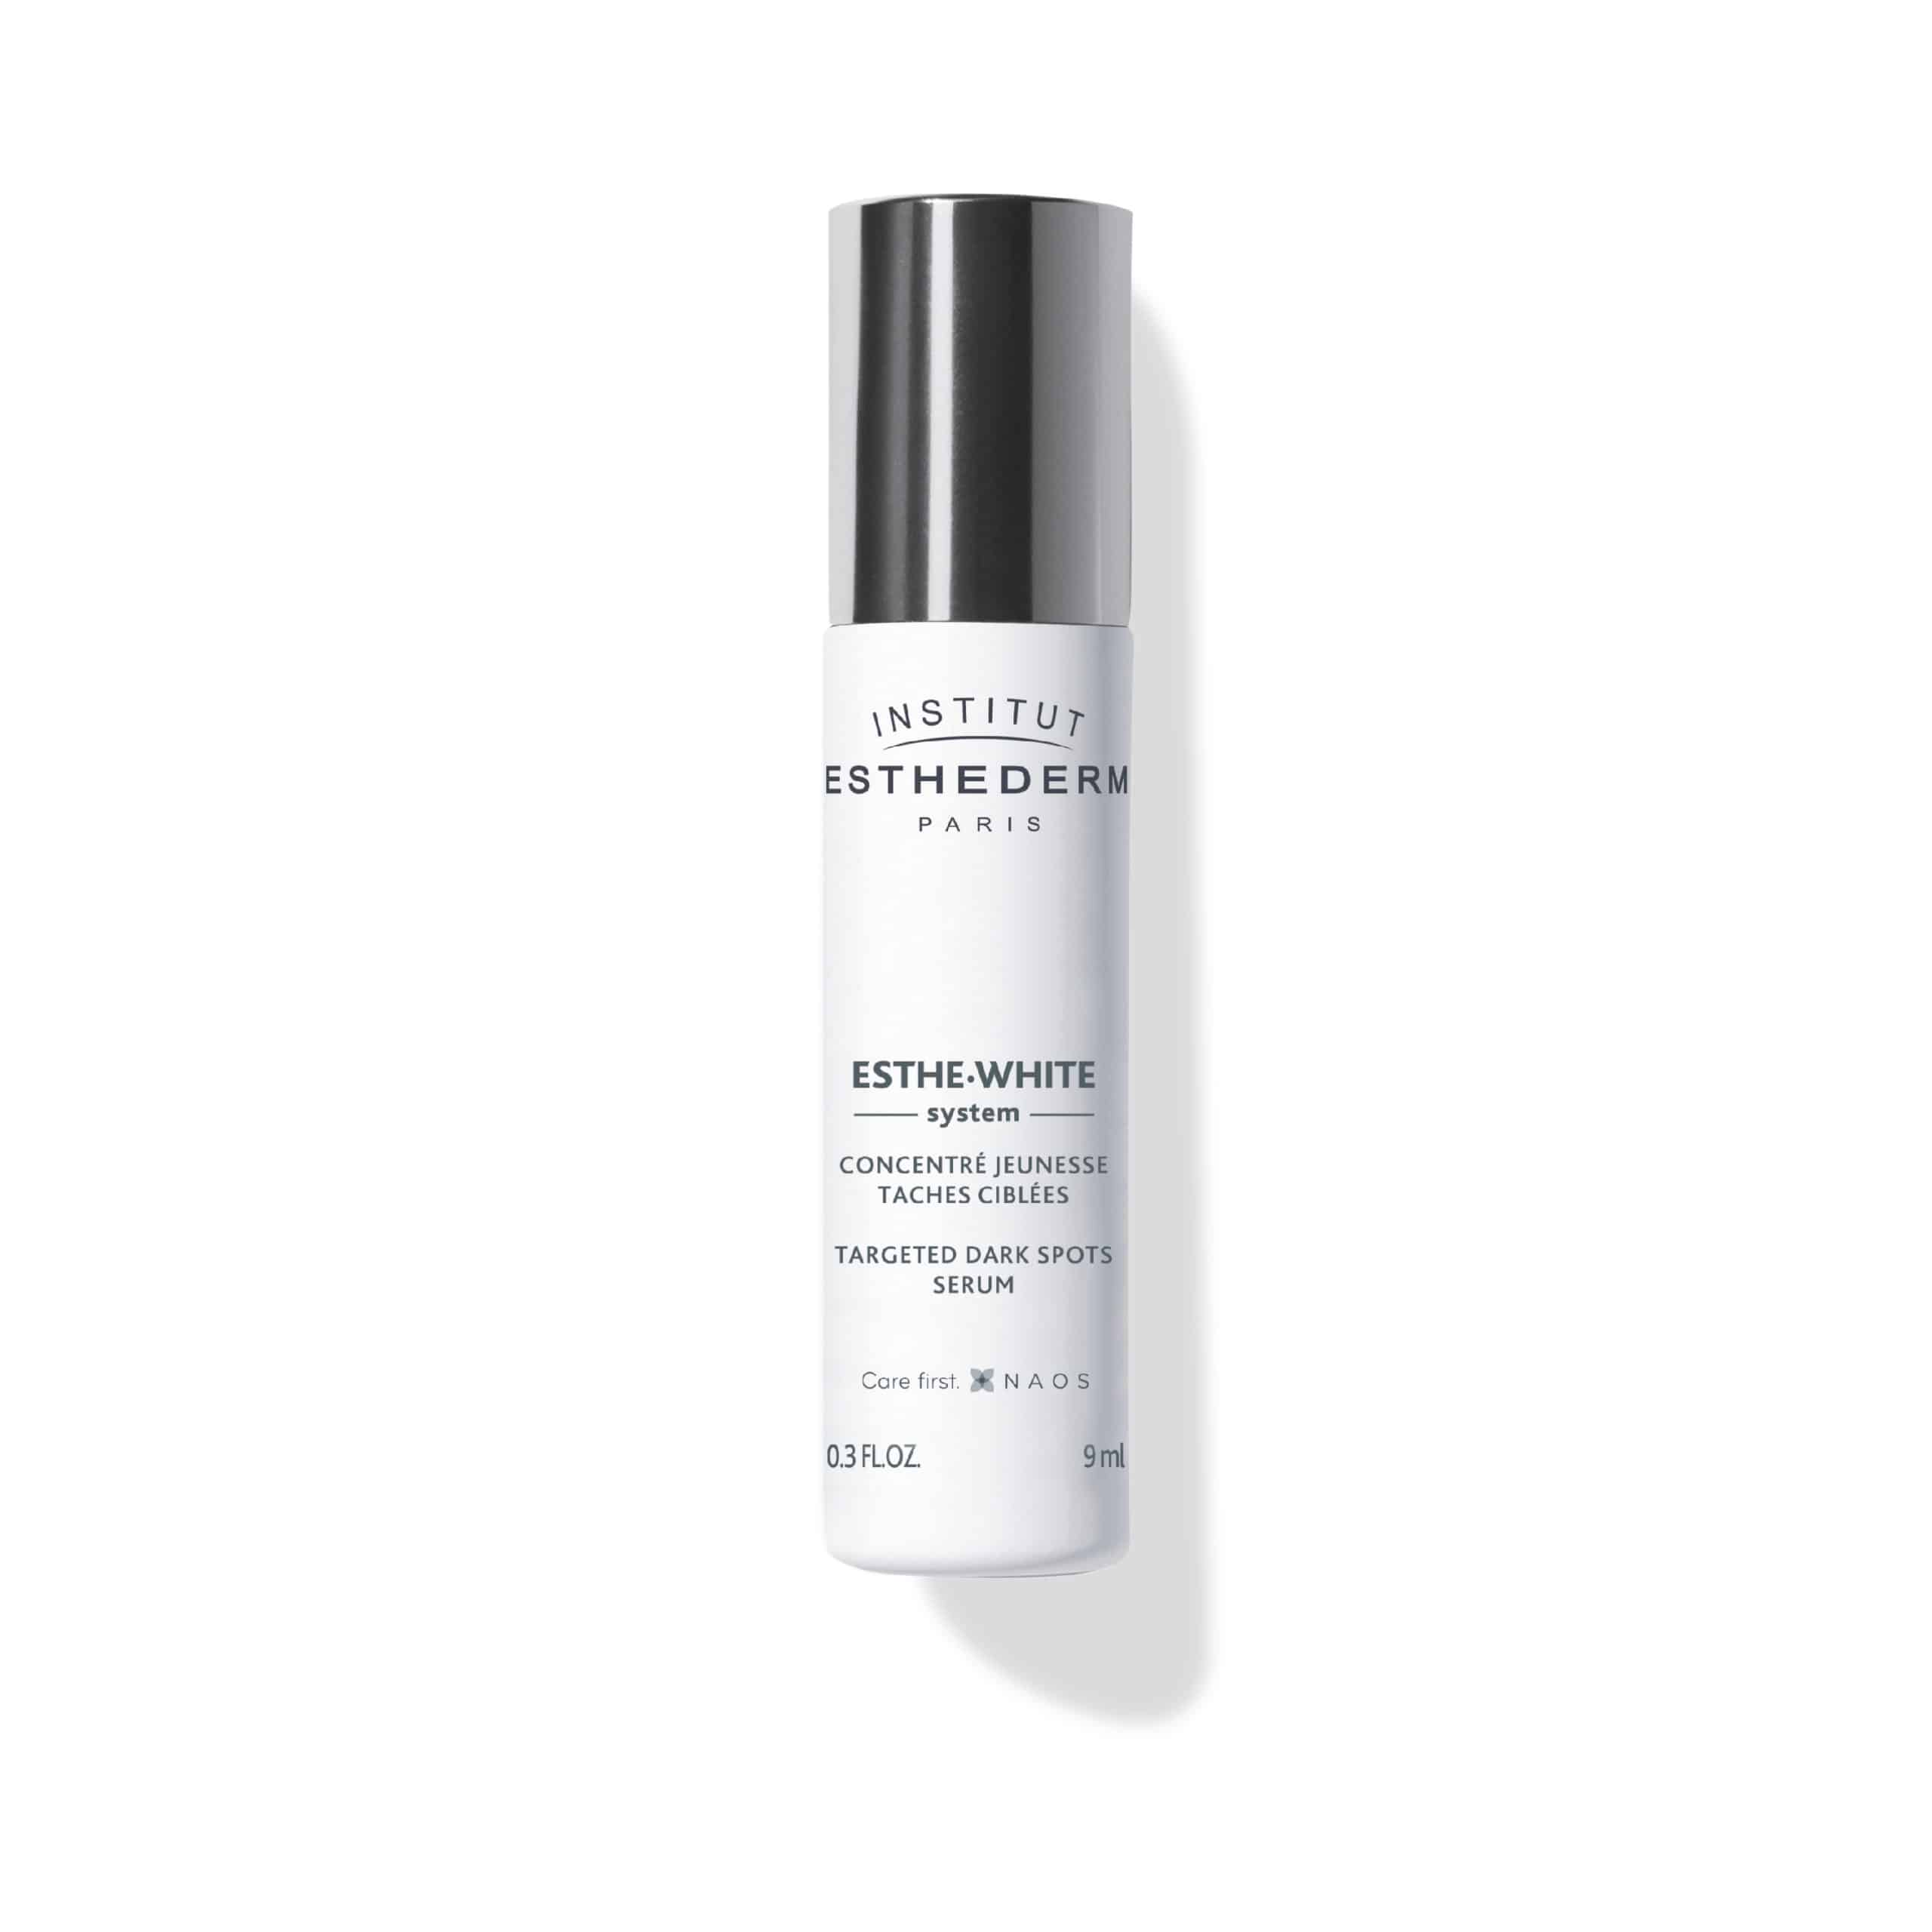 ESTHEDERM product photo, Esthe White Targeted Dark Spots Serum 9ml Roll-on, reduces dark spots, even skin tone